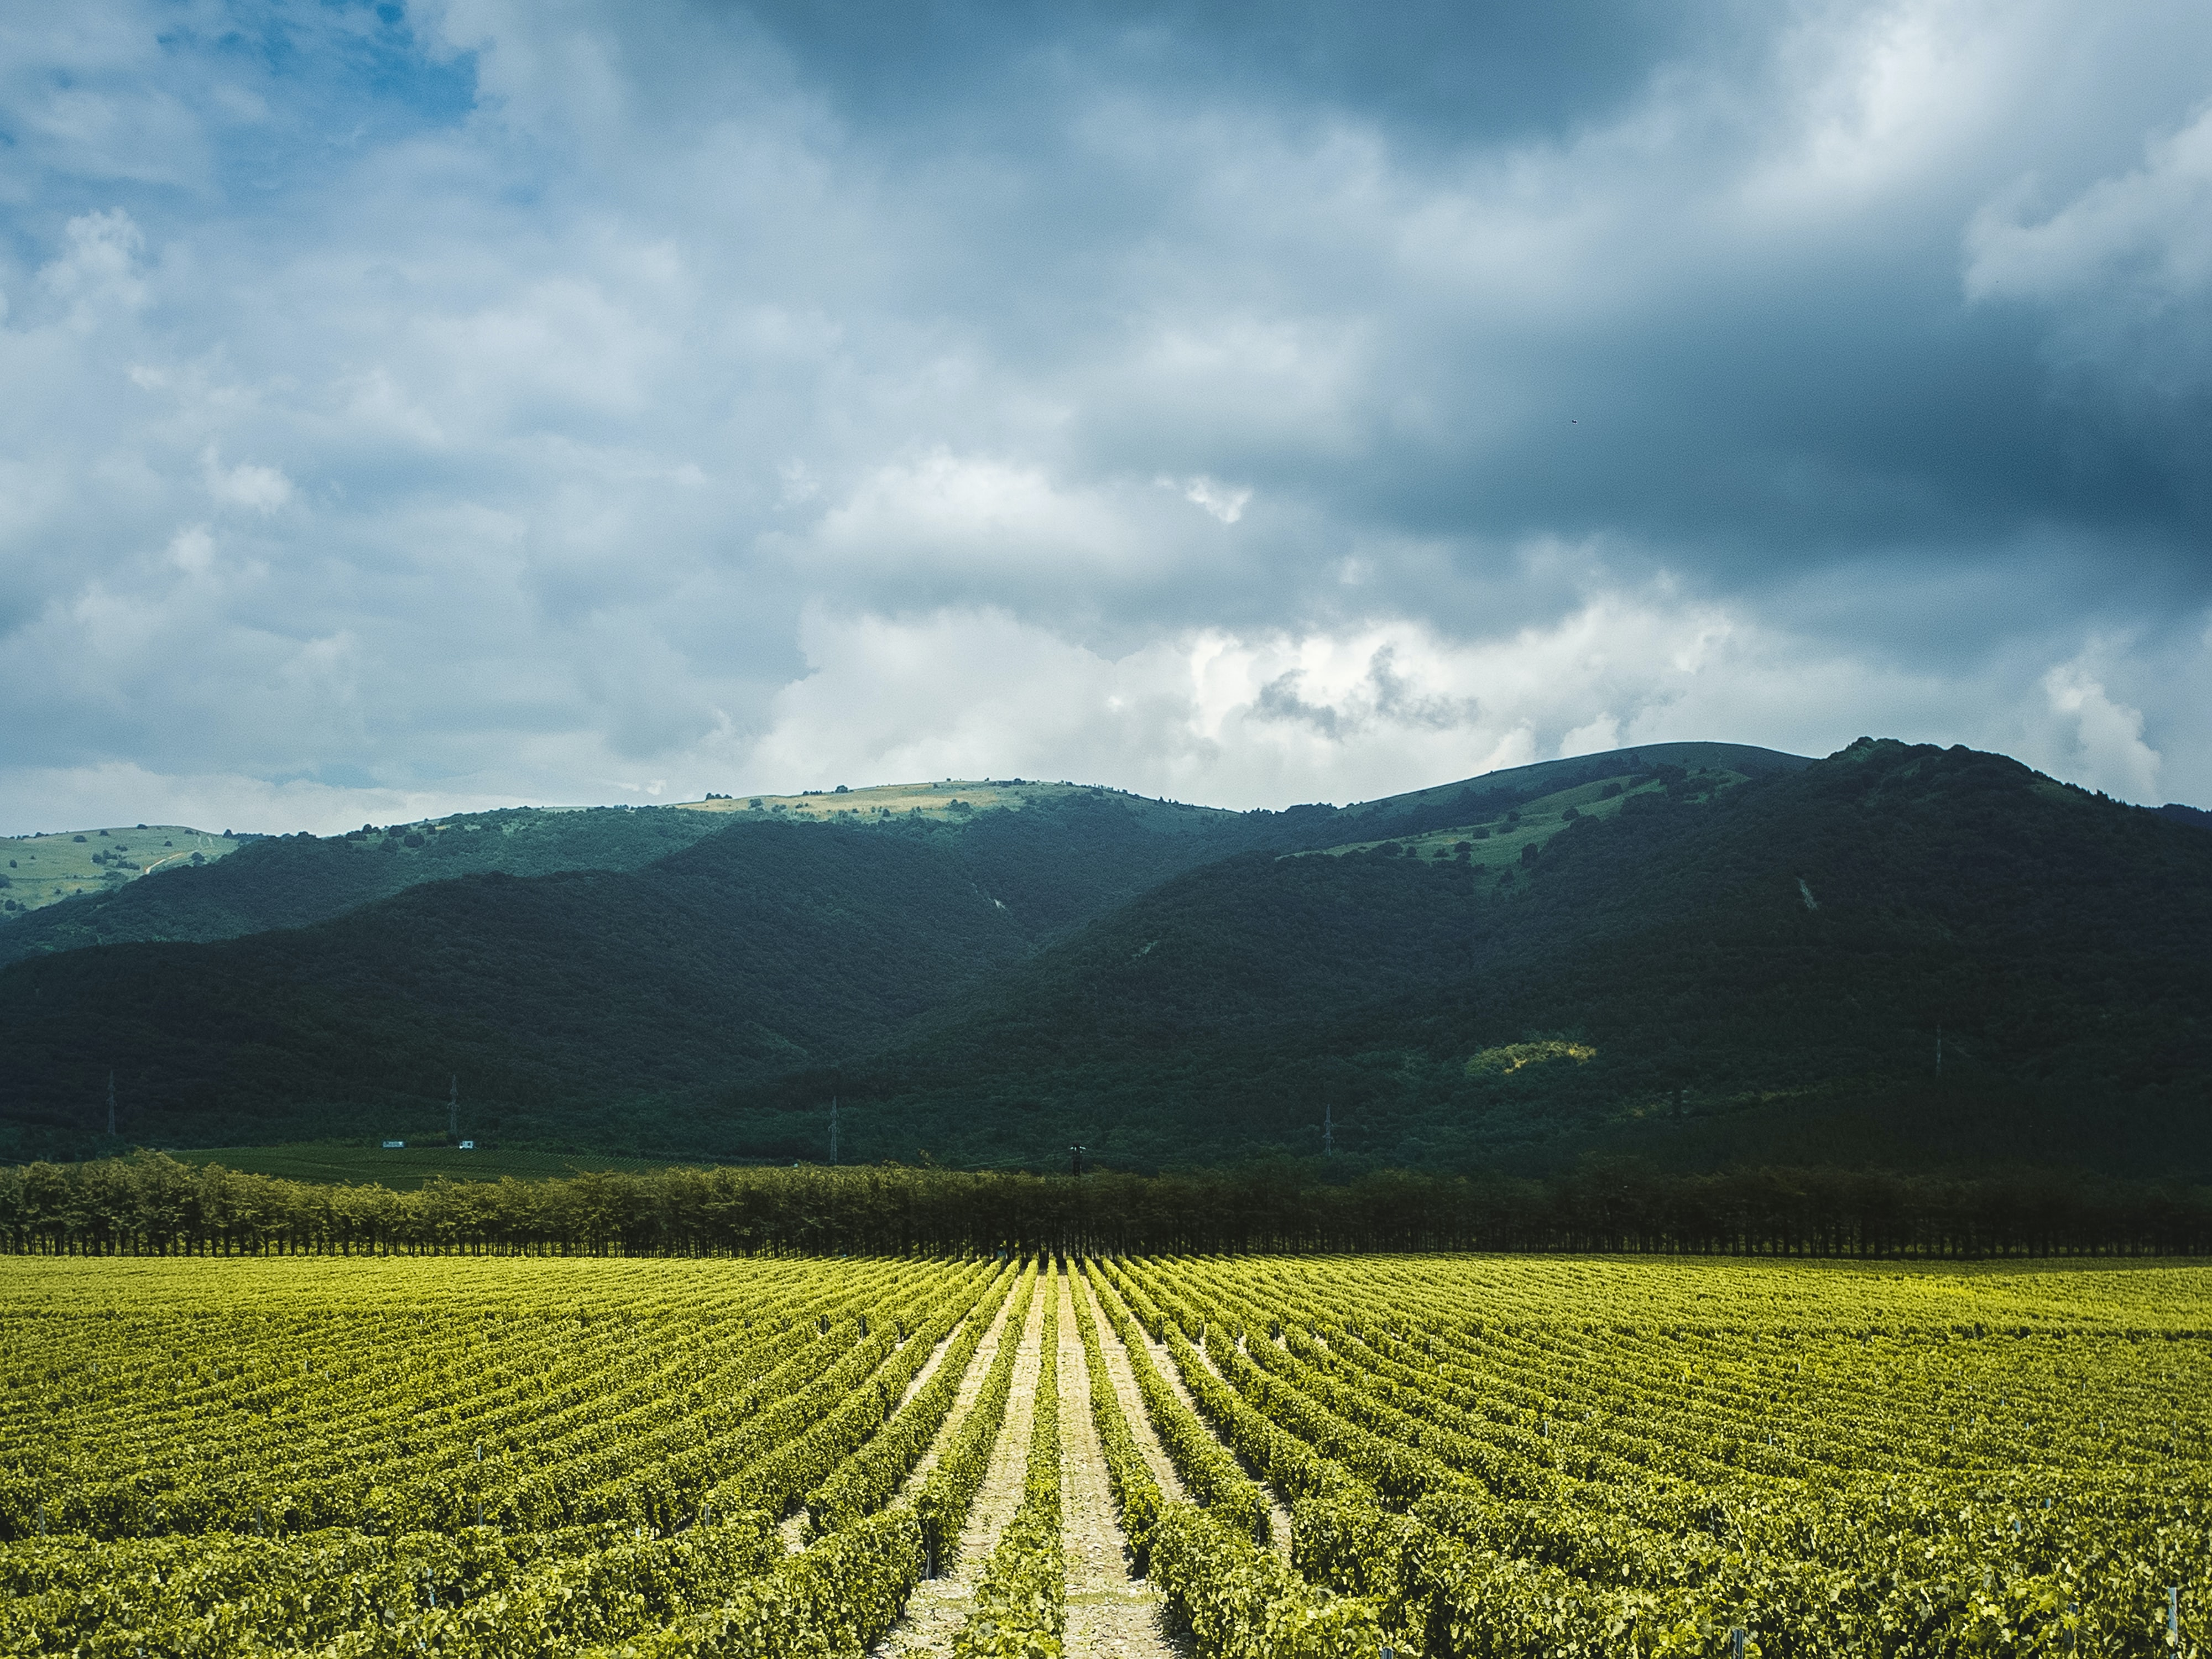 A wine vineyard that uses sulfur as a pesticide.